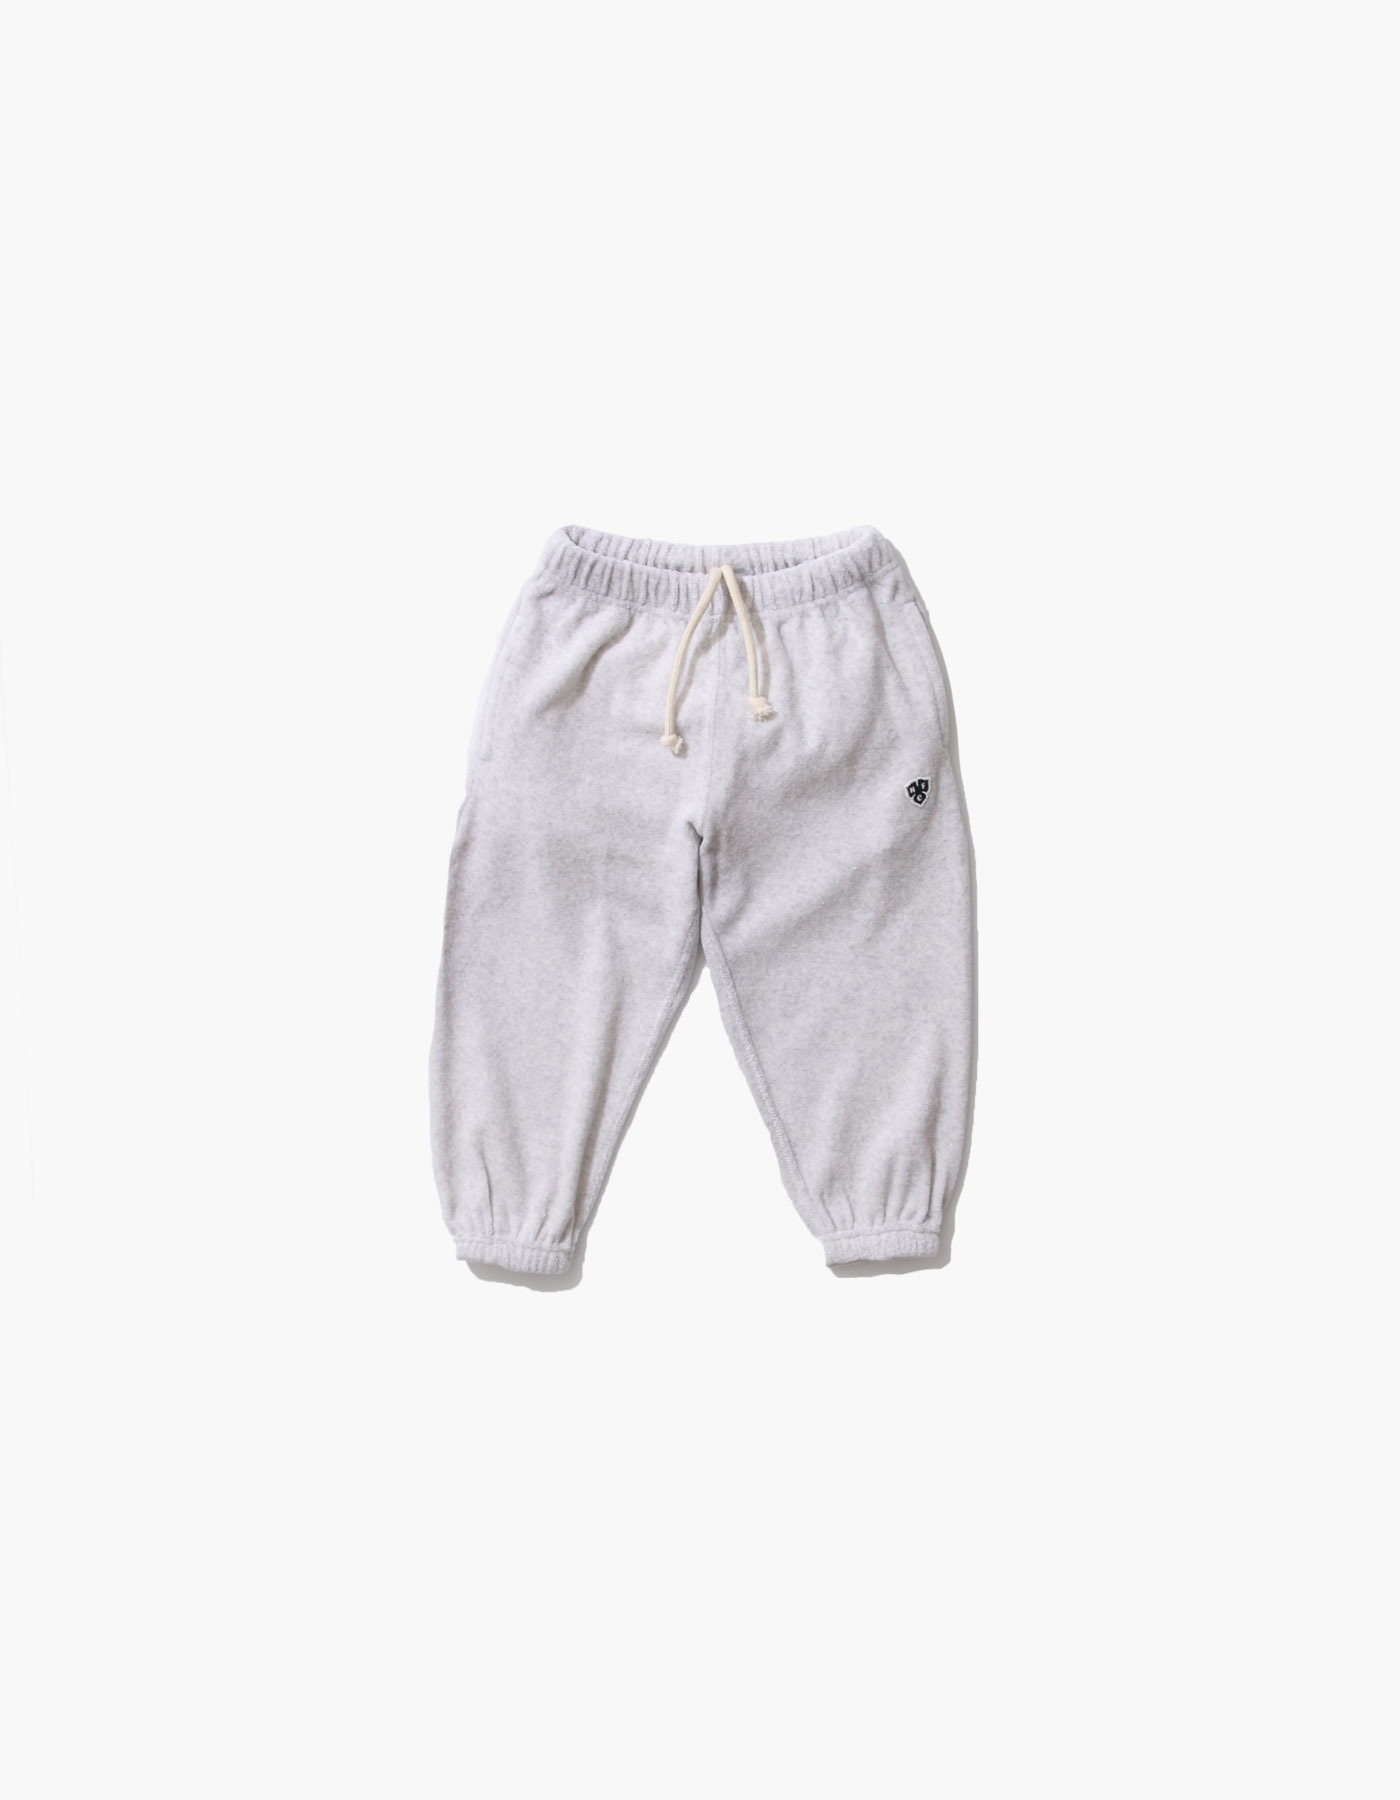 HFC CREST KIDS TOWEL JOGGER PANTS / M.GREY(1%)